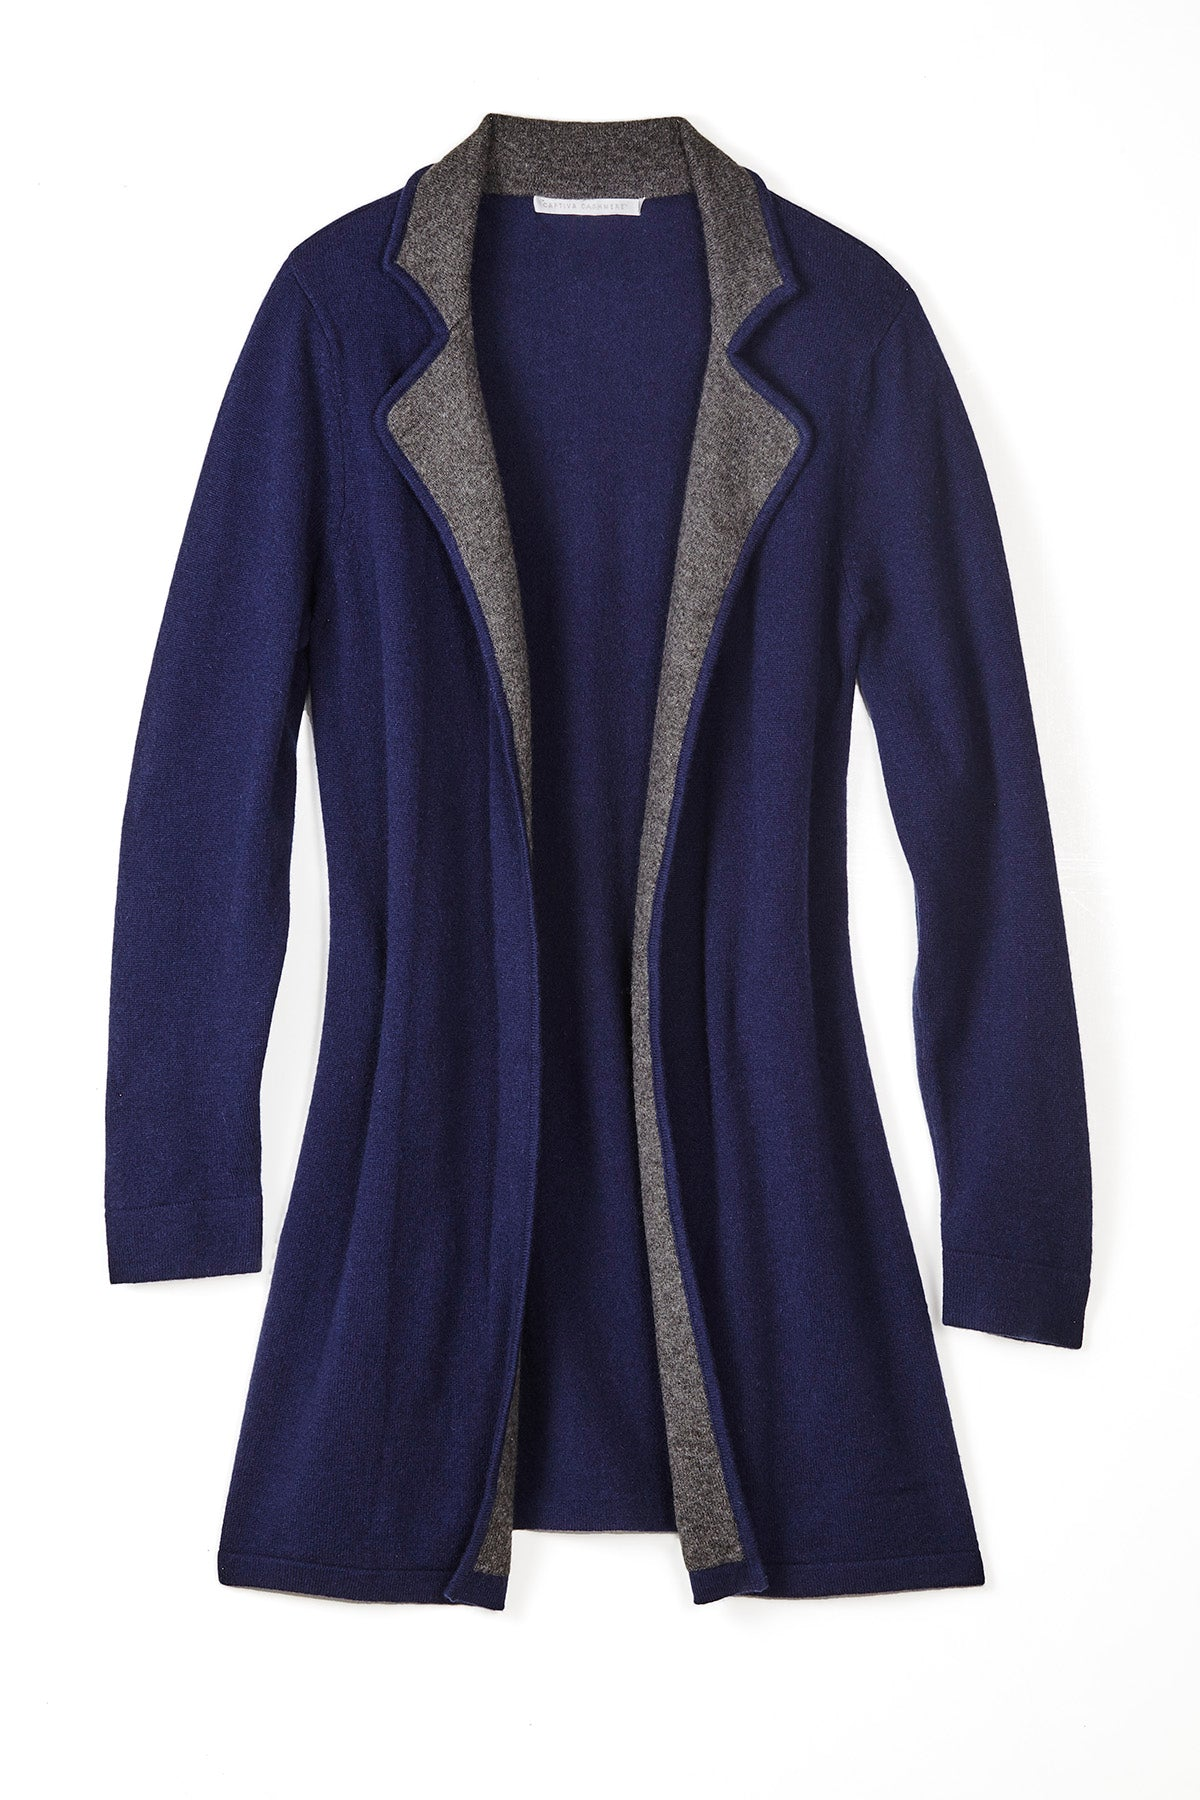 Anne Cardigan - Navy/Charcoal